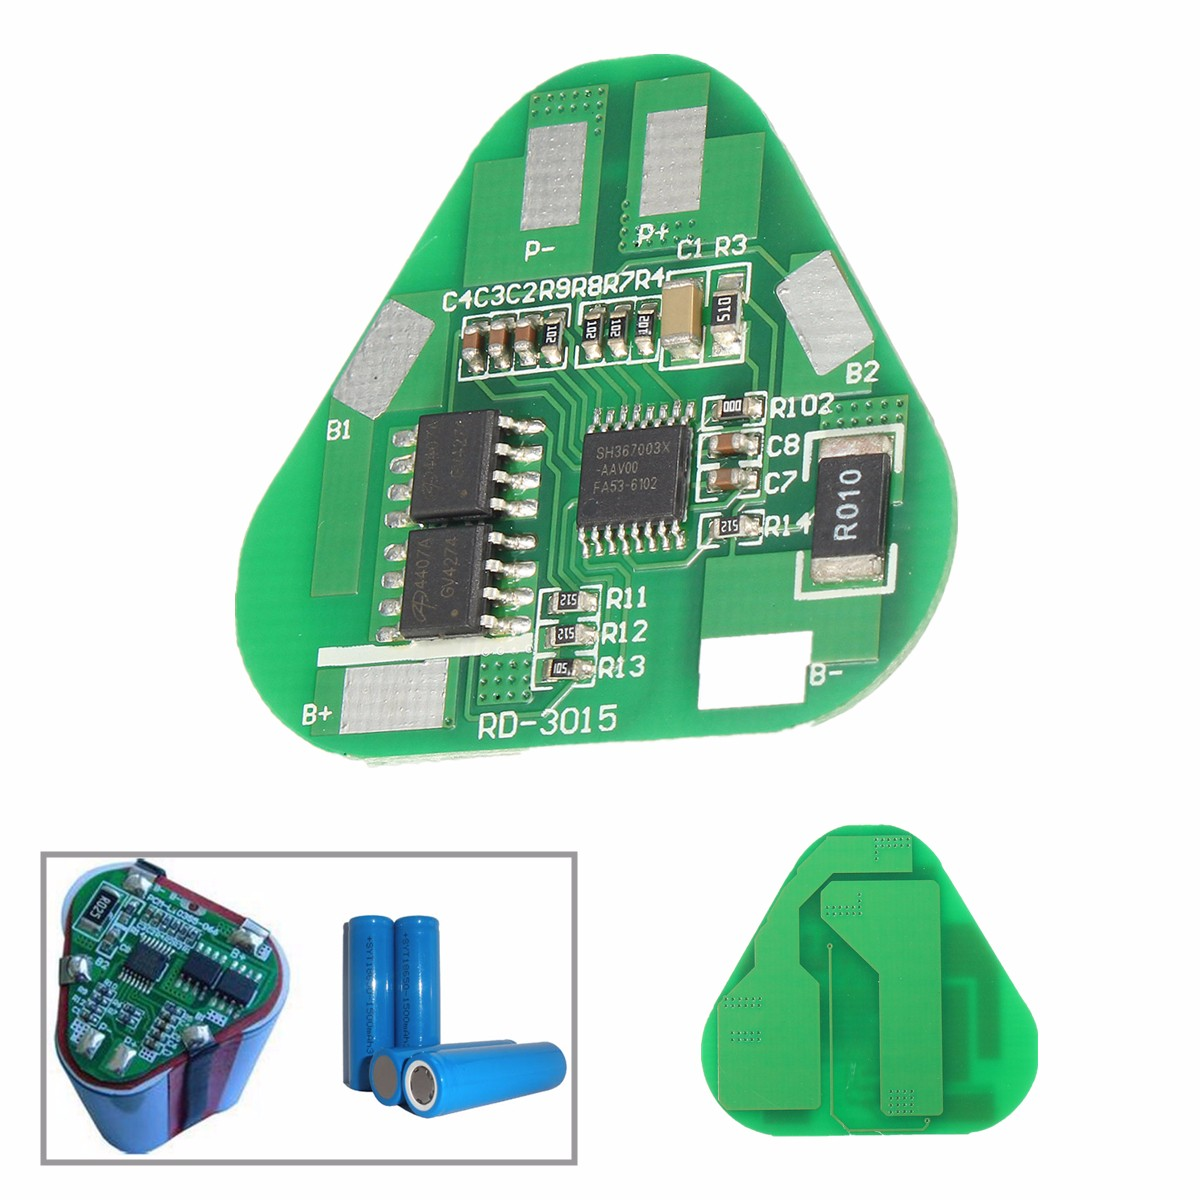 4a 3s Li Ion Lithium Battery Protection Circuit Board Three Cell Pcb Images Of 18650 250dd389 C6e6 444e 972c Feeea6d0789d